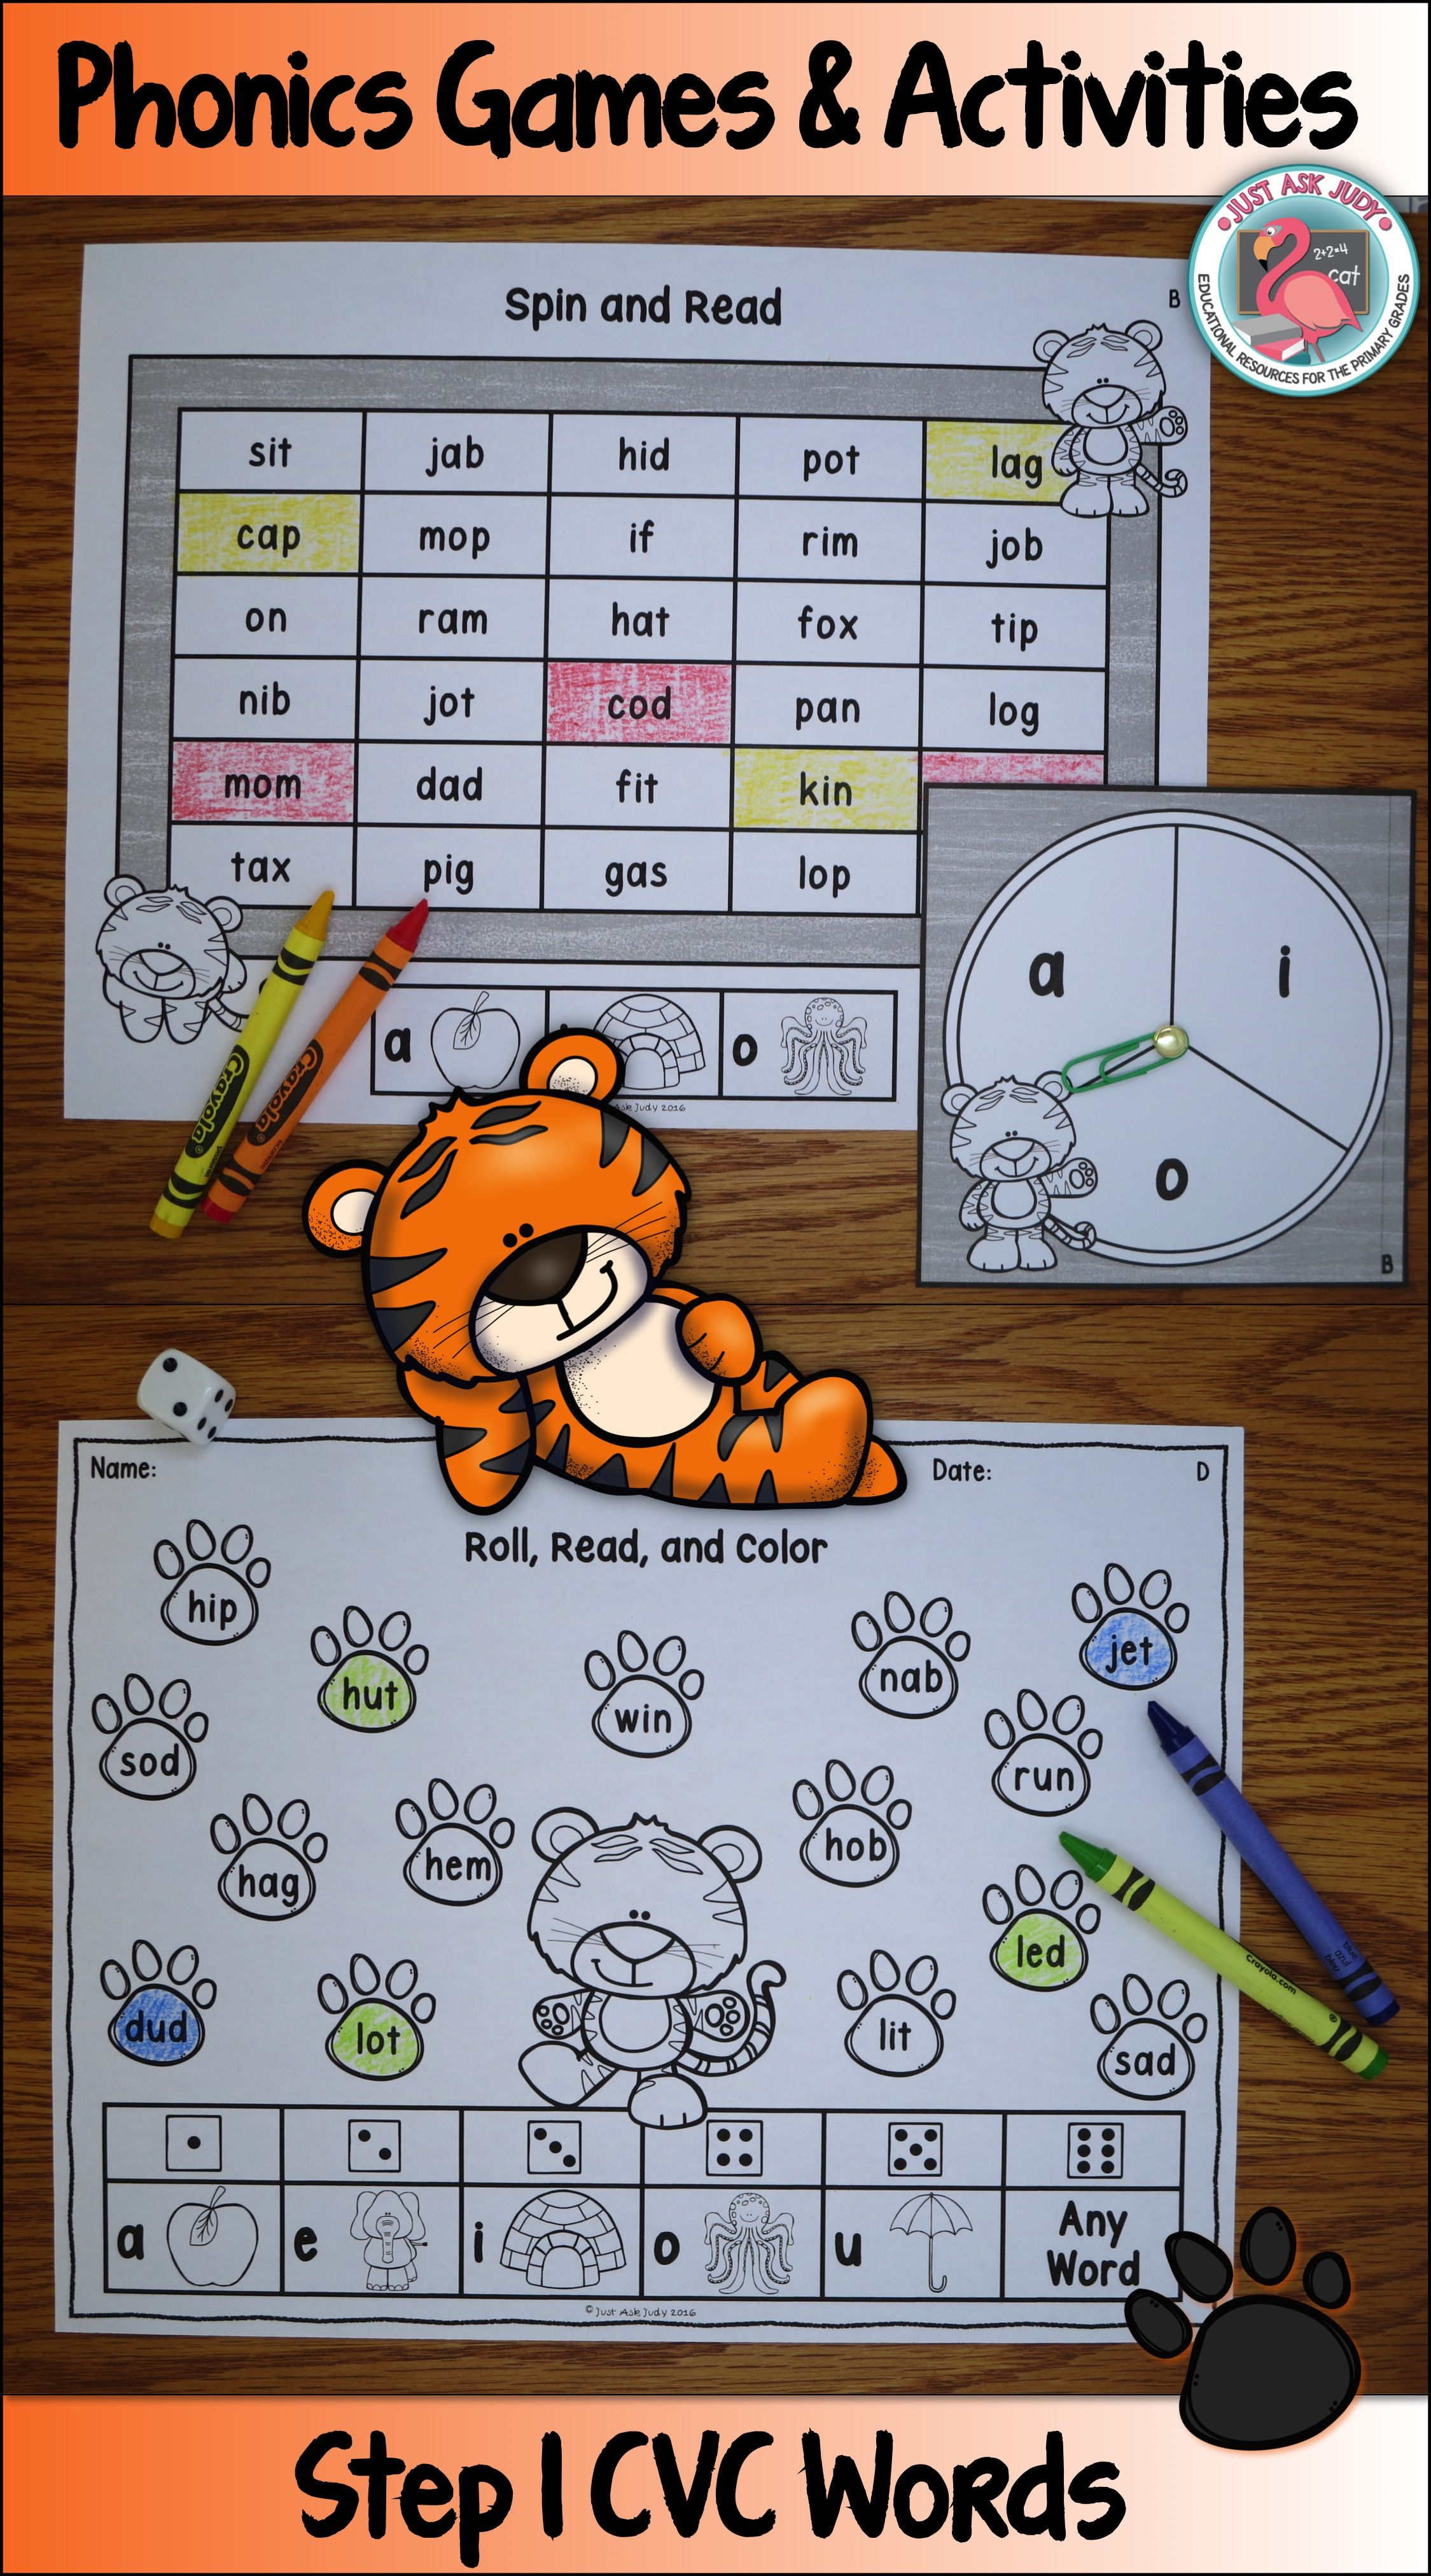 Phonics Games and Activities with CVC Words | Schule